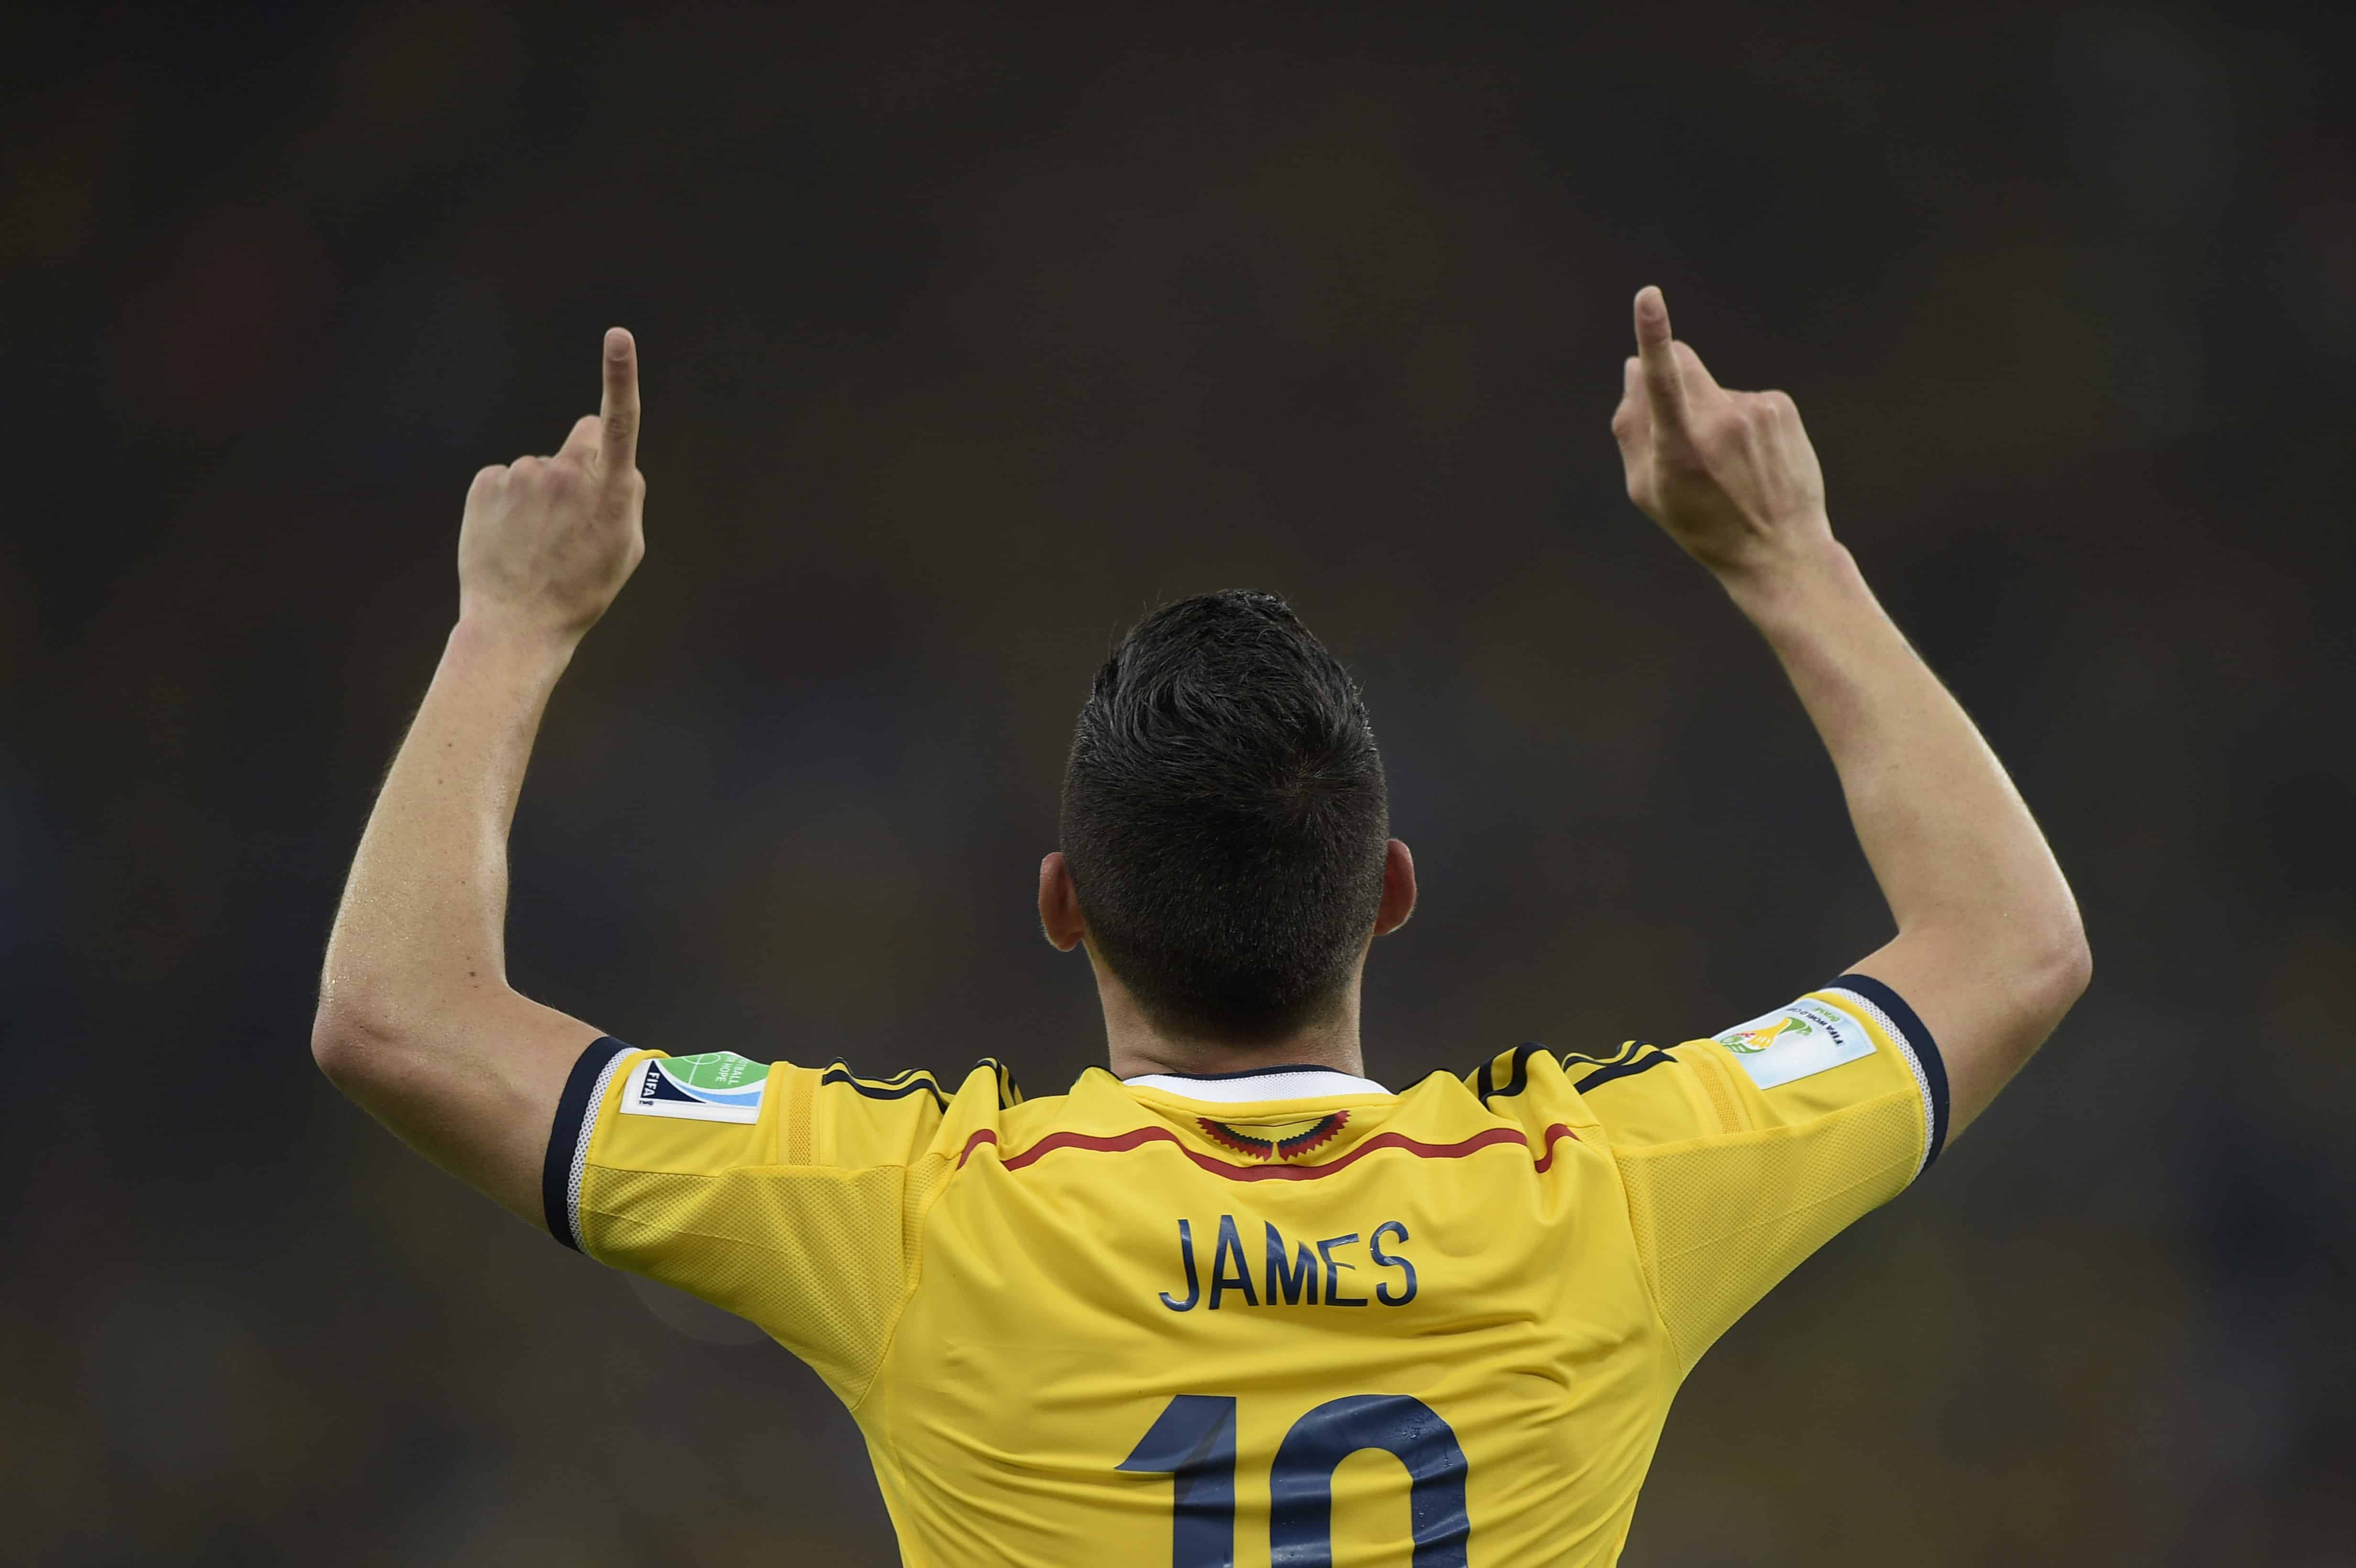 newest d5e06 d3523 Colombia Soccer Jersey 2018 James